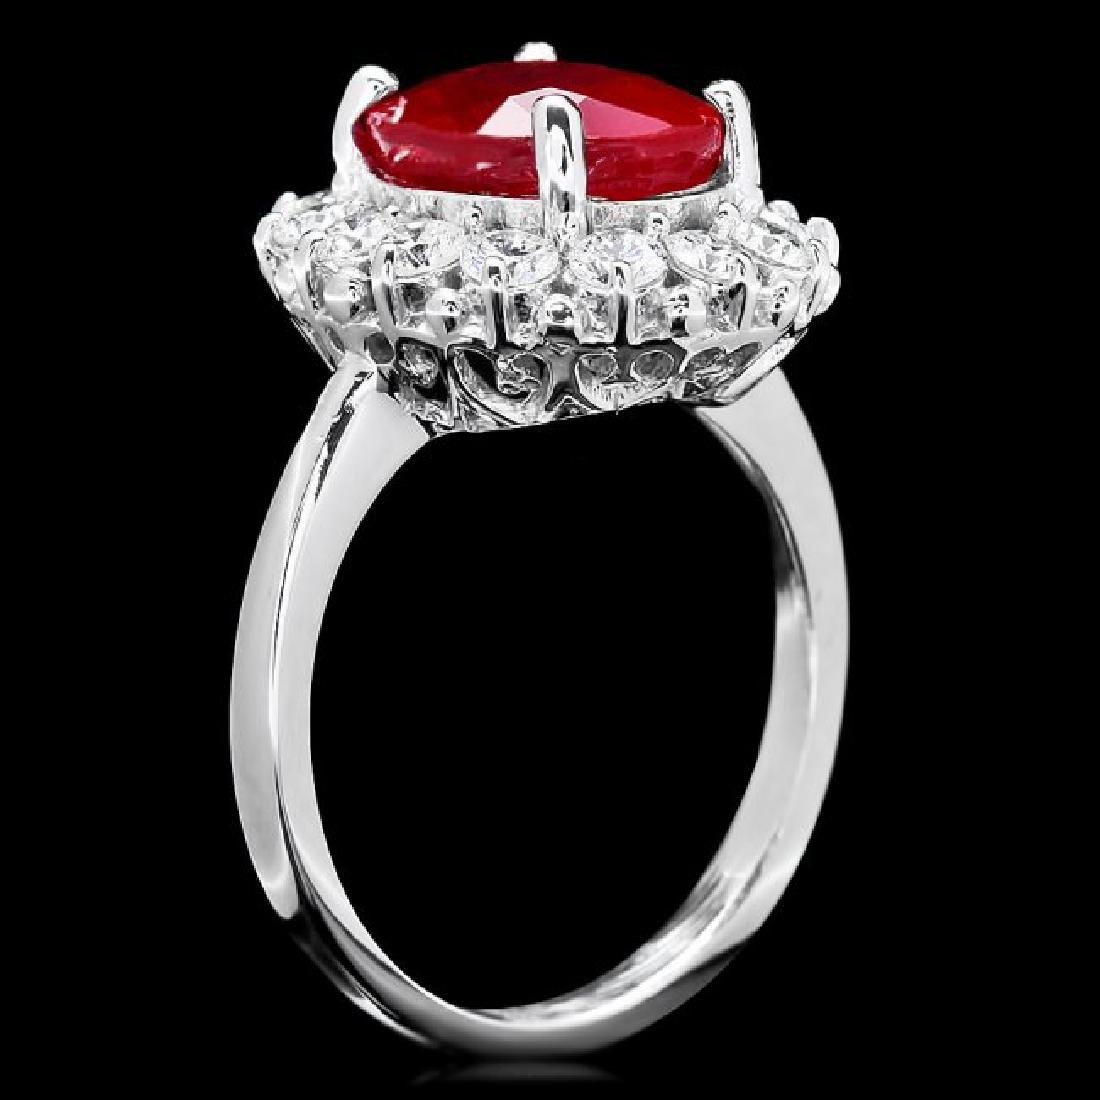 14k White Gold 5.00ct Ruby 1.00ct Diamond Ring - 3